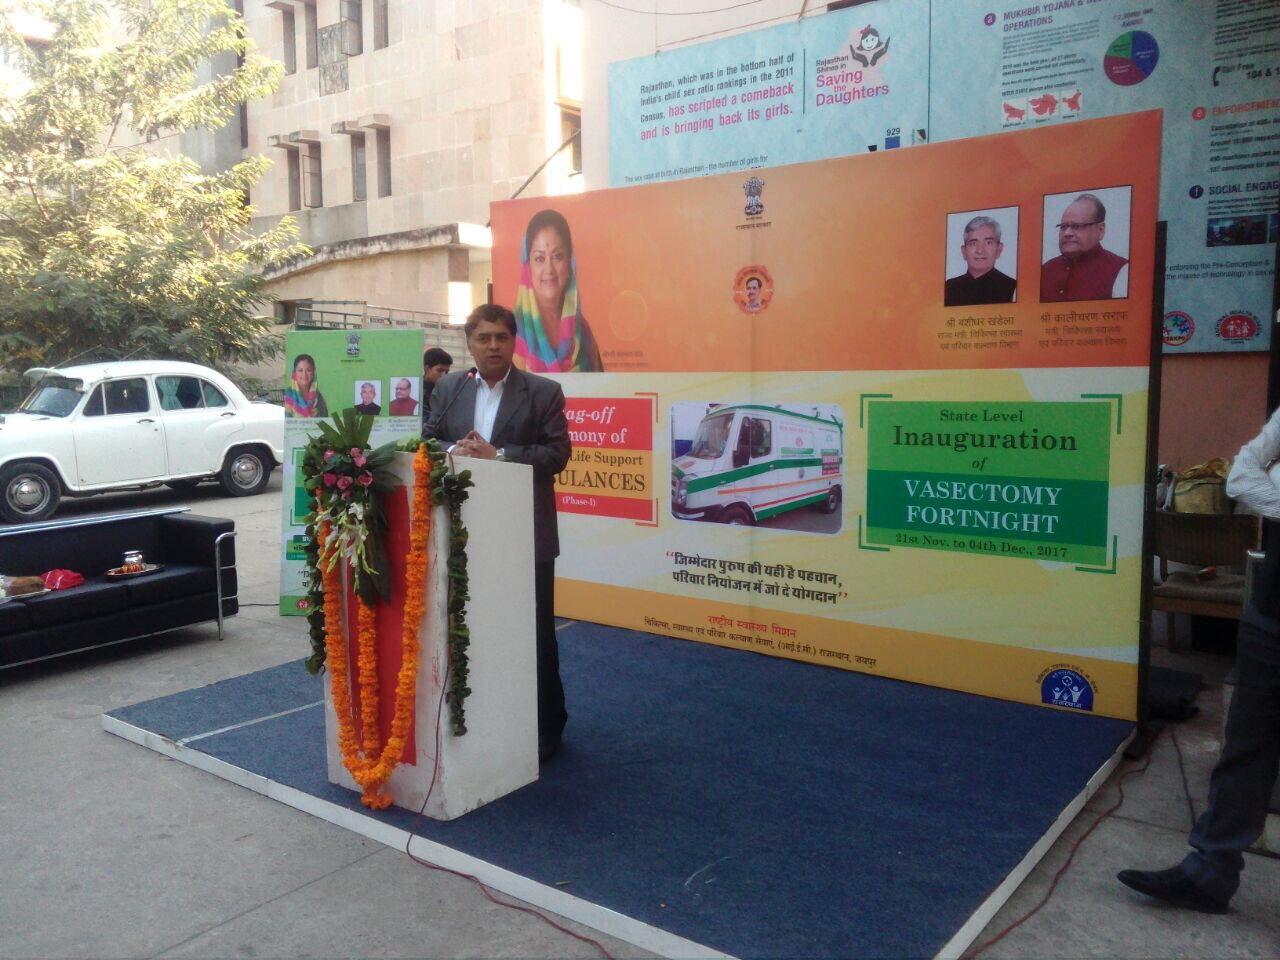 State level inauguration ceremony held for Vasectomy Fortnight in Jaipur, Rajasthan.